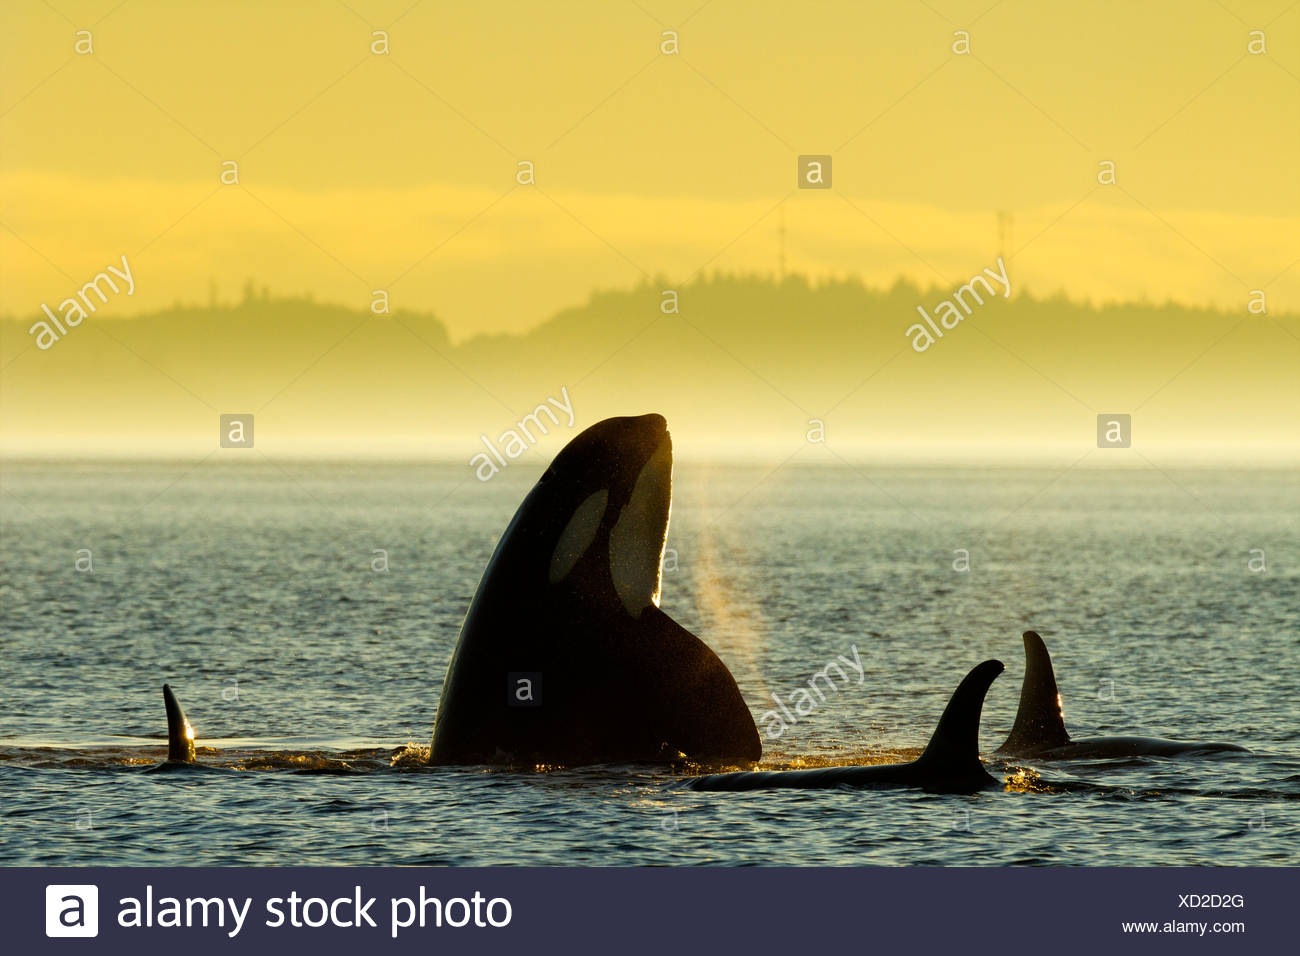 Northern Resident Killer whales playing and spyhopping in front of Alert Bay, Cormorant Island, British Columbia, Canada. Orcinus orca - Stock Image